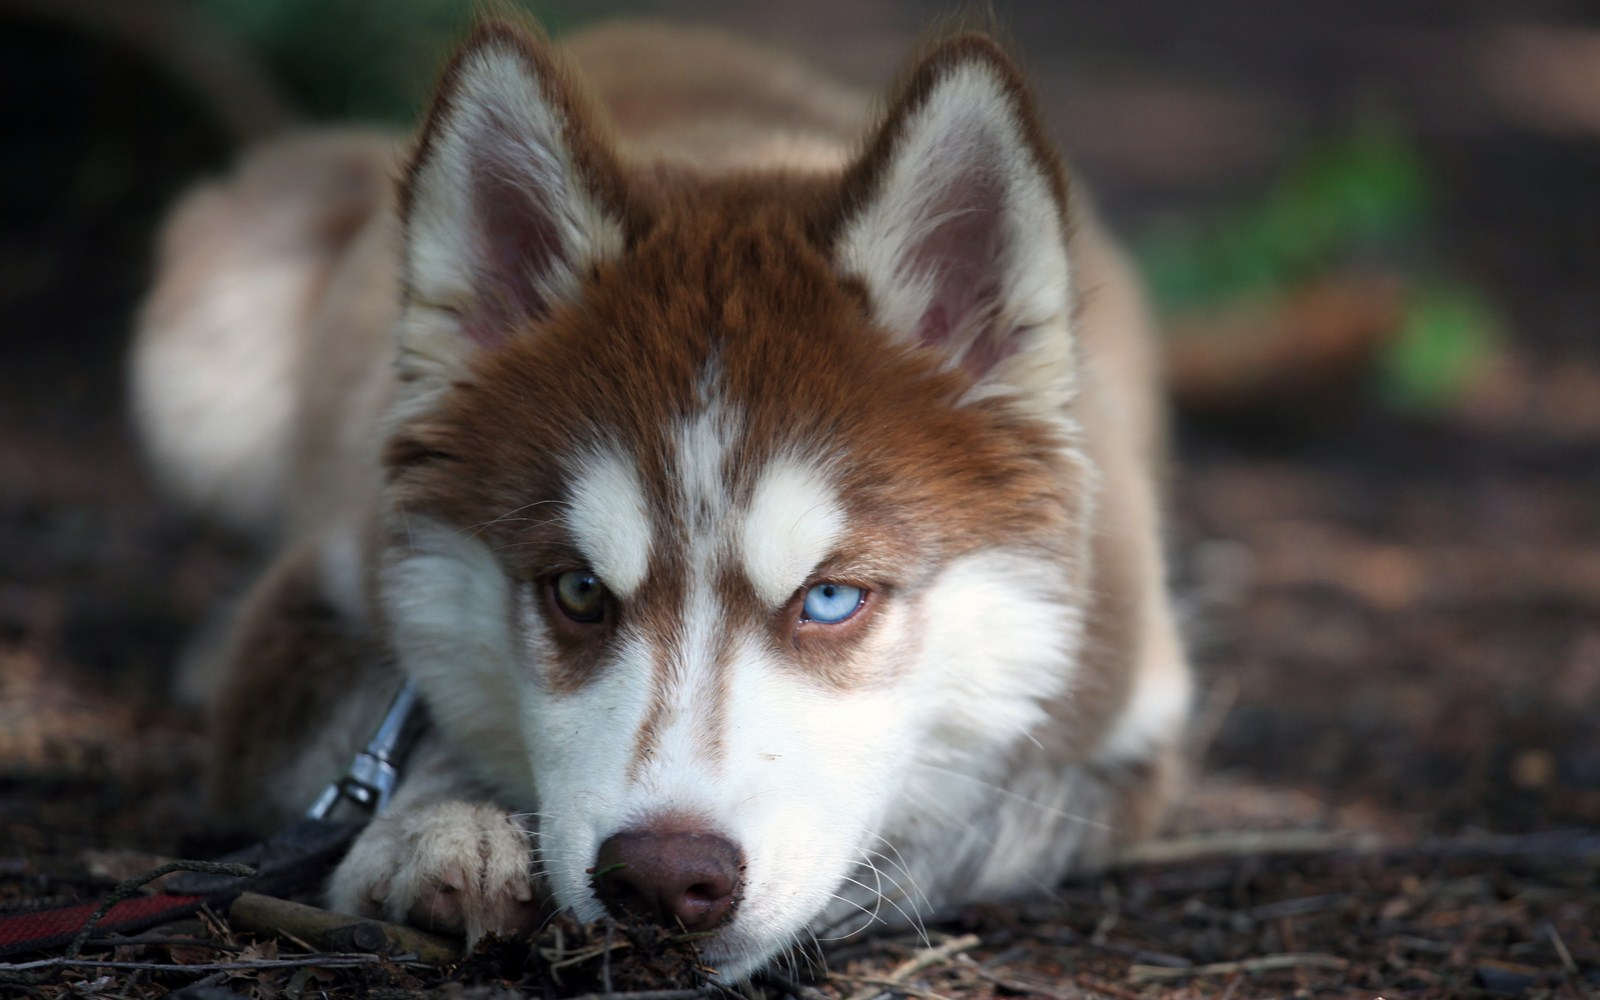 husky dog wallpaper hd | gambar joss